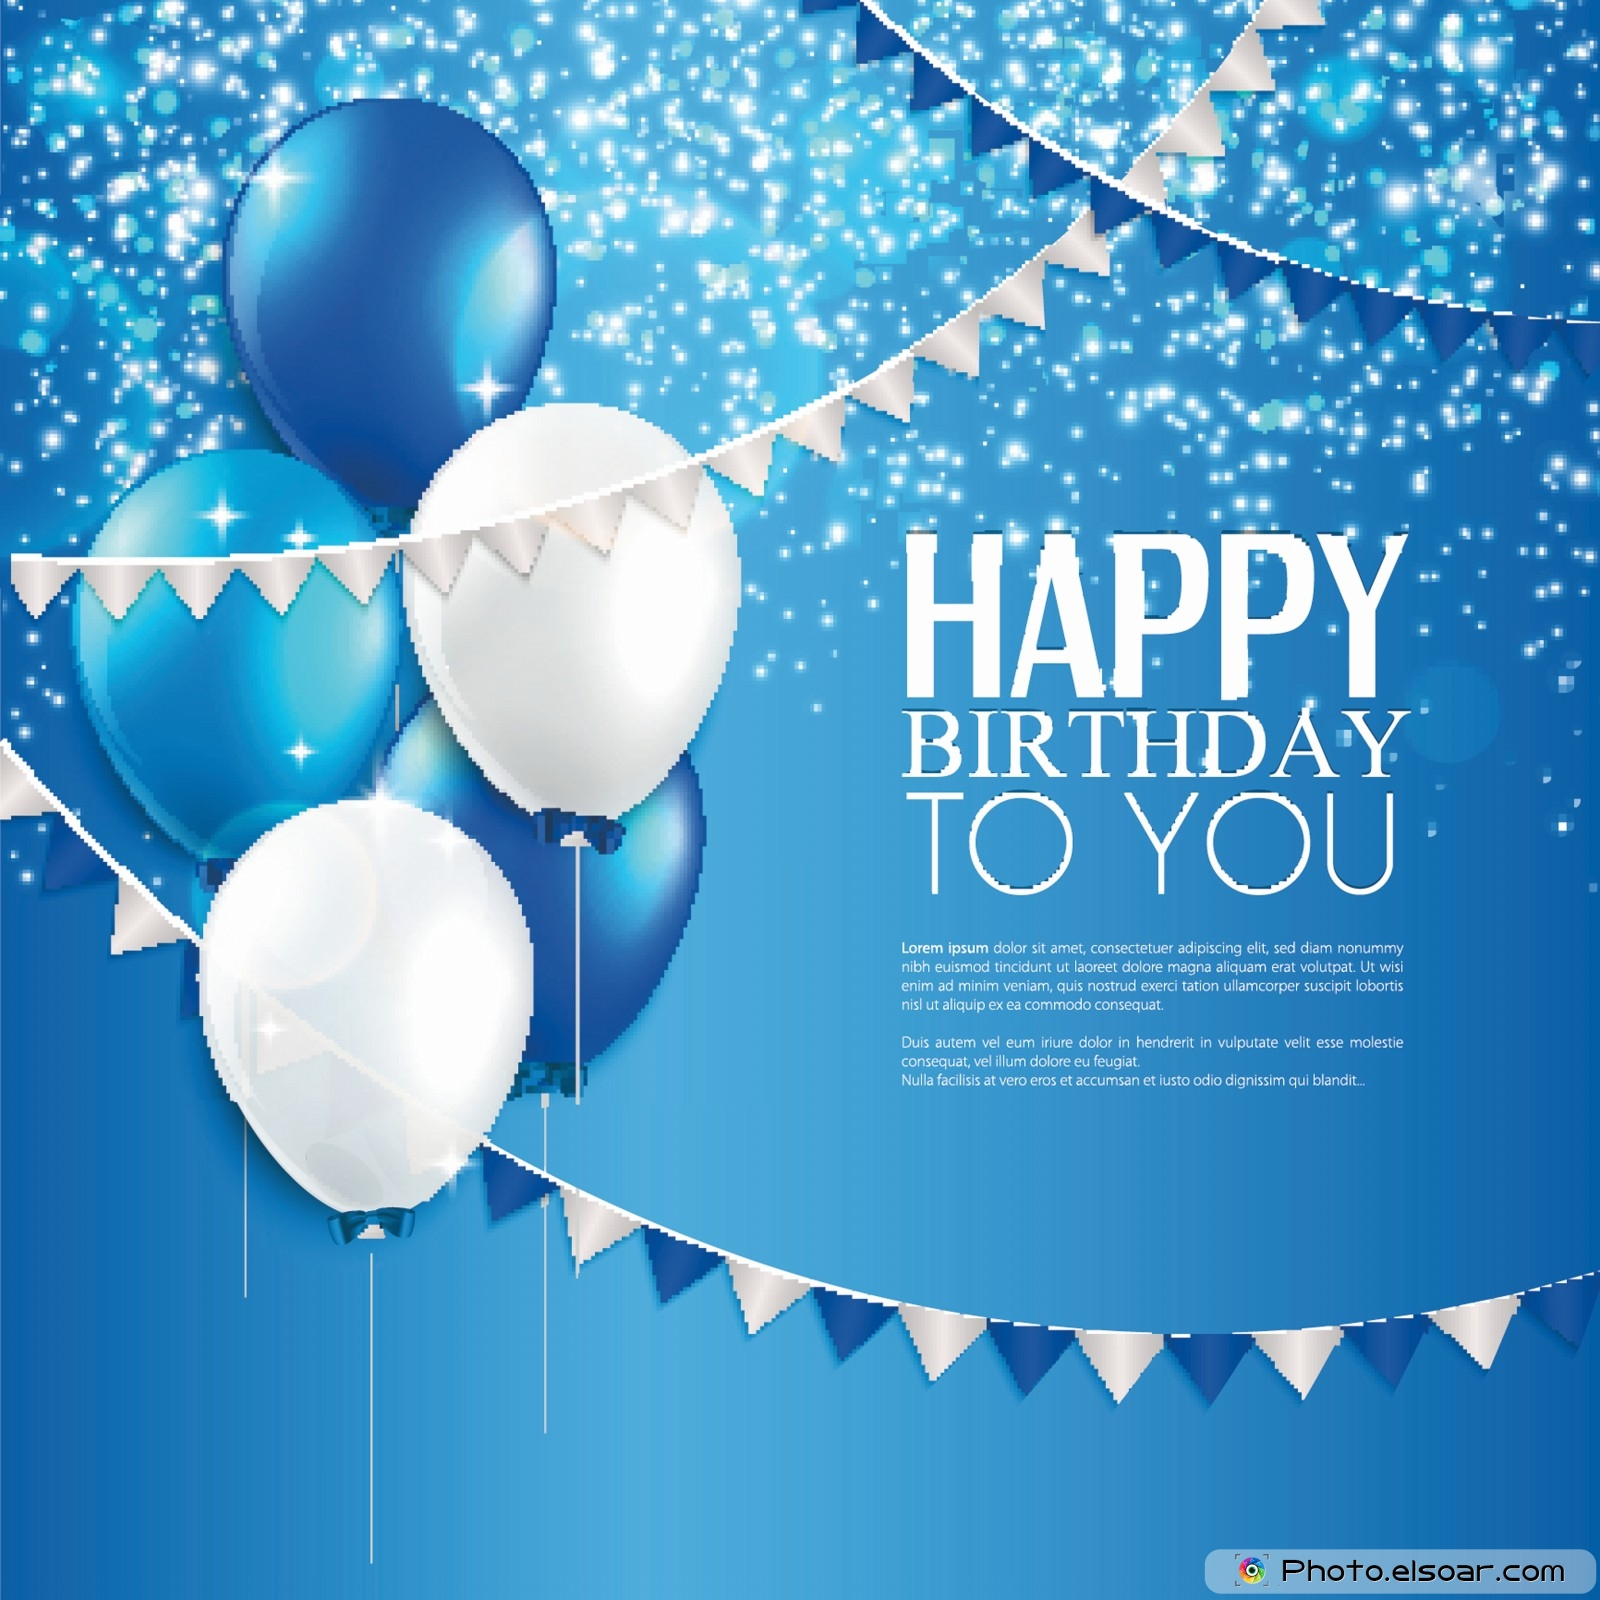 free download happy birthday to you on a blue background